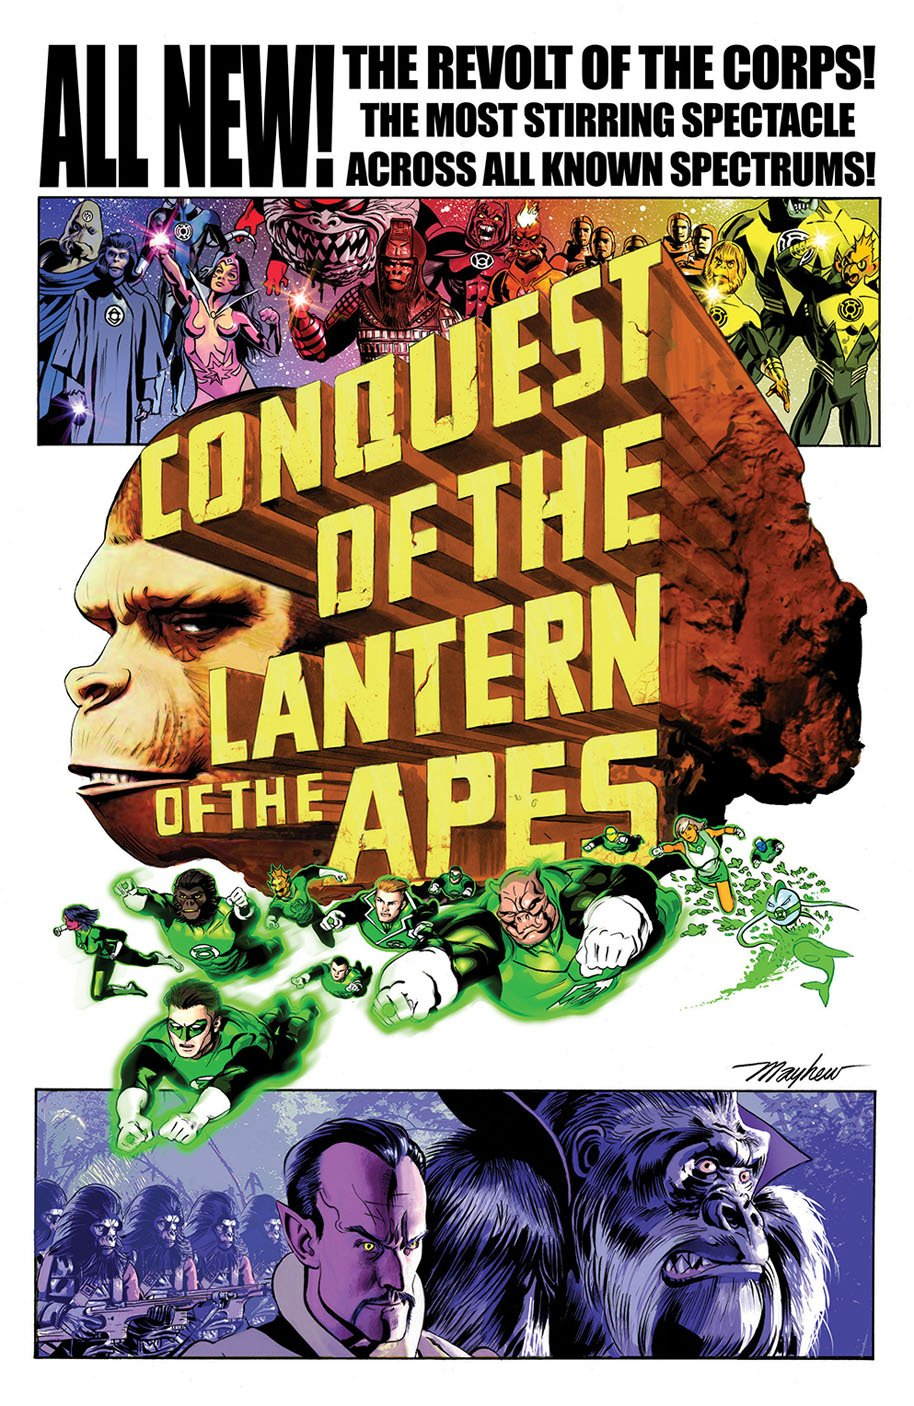 Planet of the Apes Green Lantern 4 Movie Poster Variant Cover B